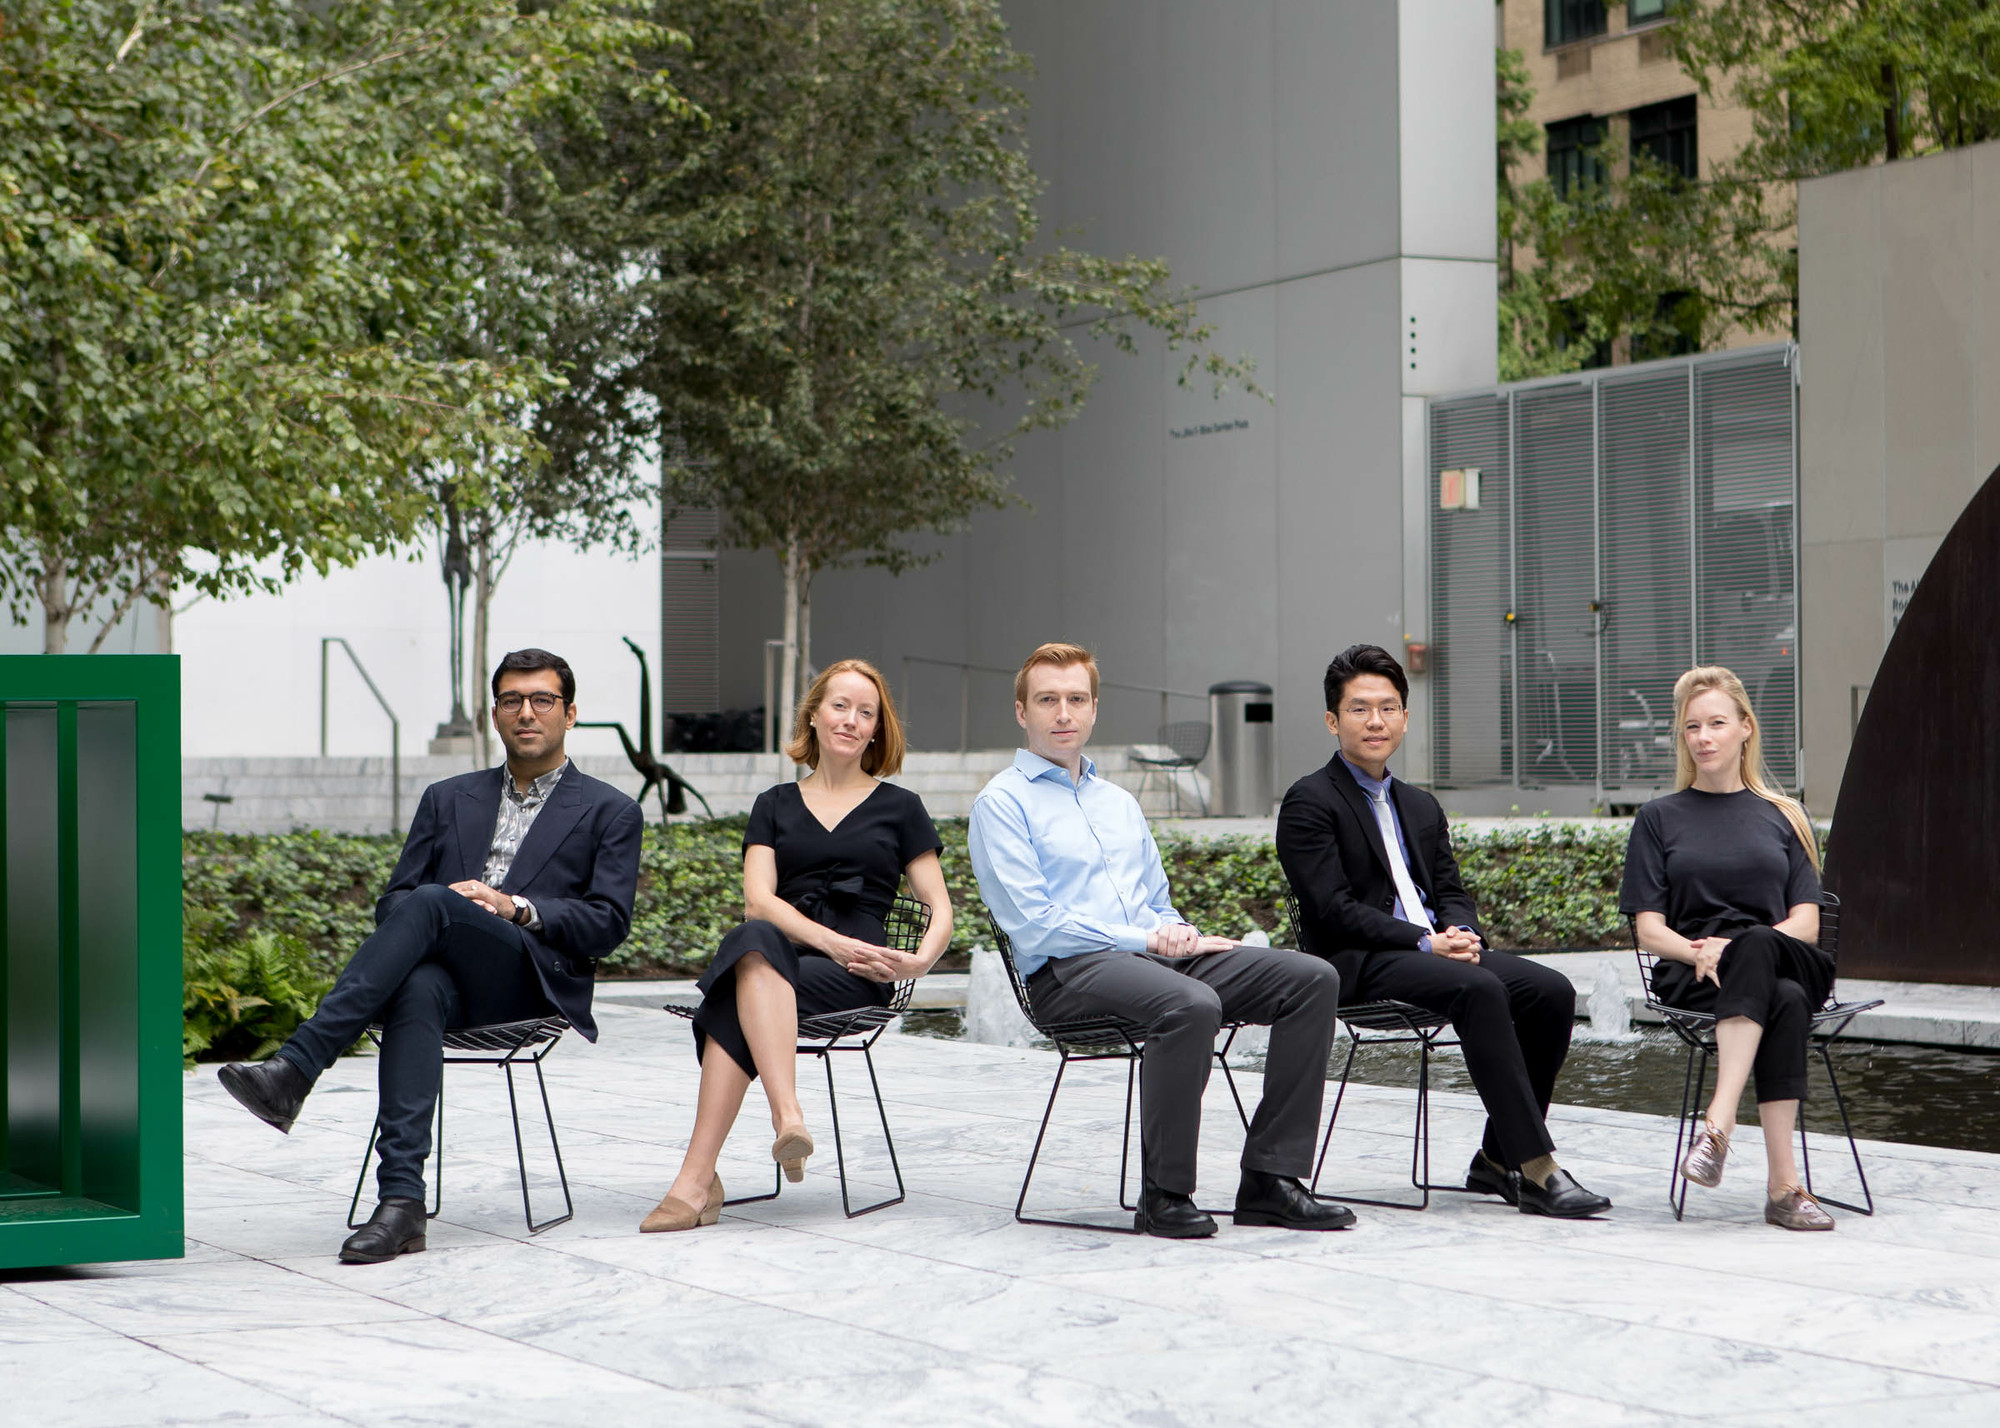 2019–20 MRC Fellows, from left: Rattanamol Singh Johal, Annemarie Iker, Andrew Vielkind, Da Hyung Jeong, and Dana Liljegren. Photo: Marcin J. Muchalski, Diamond Shot Studio